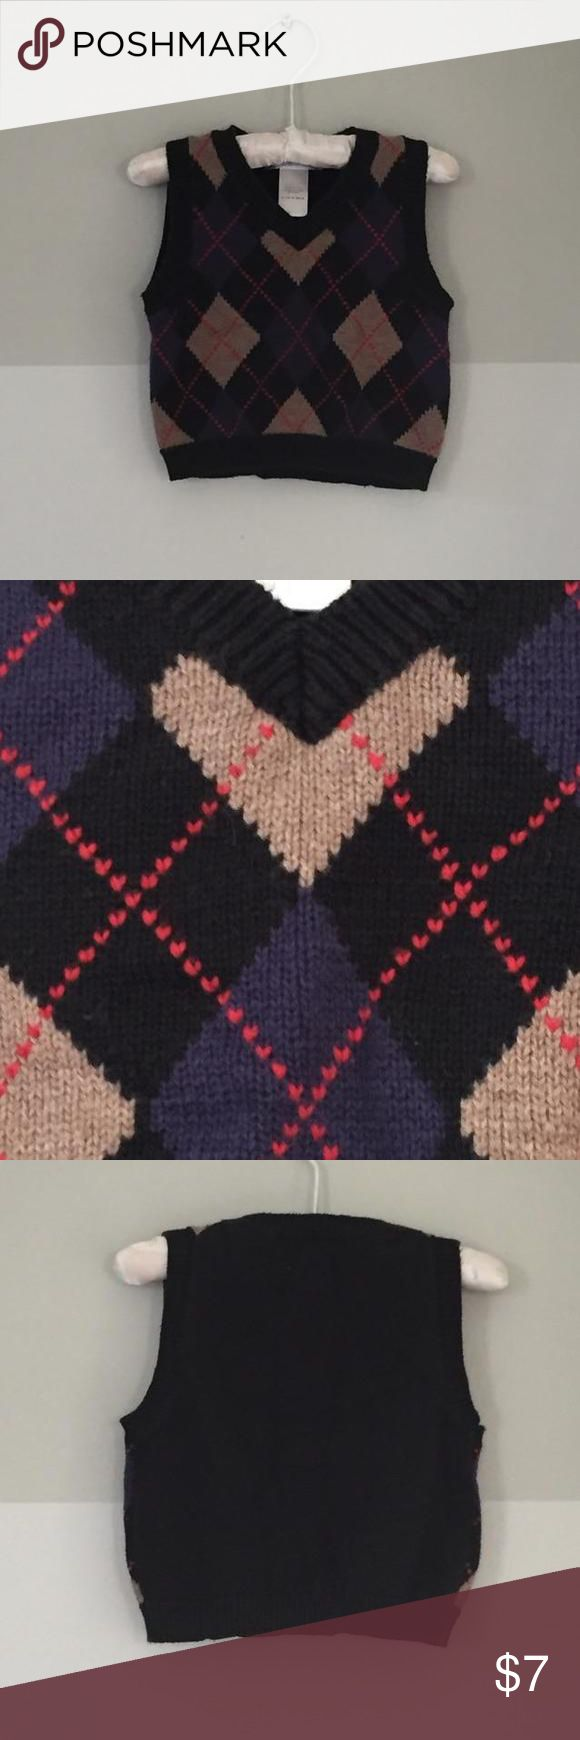 Janie and Jack Argyle Sweater Vest Black sweater vest with camel, dark purple, and red argyle pattern on front. V-neck. 100% cotton. Great for fall photos! Janie and Jack Shirts & Tops Sweaters